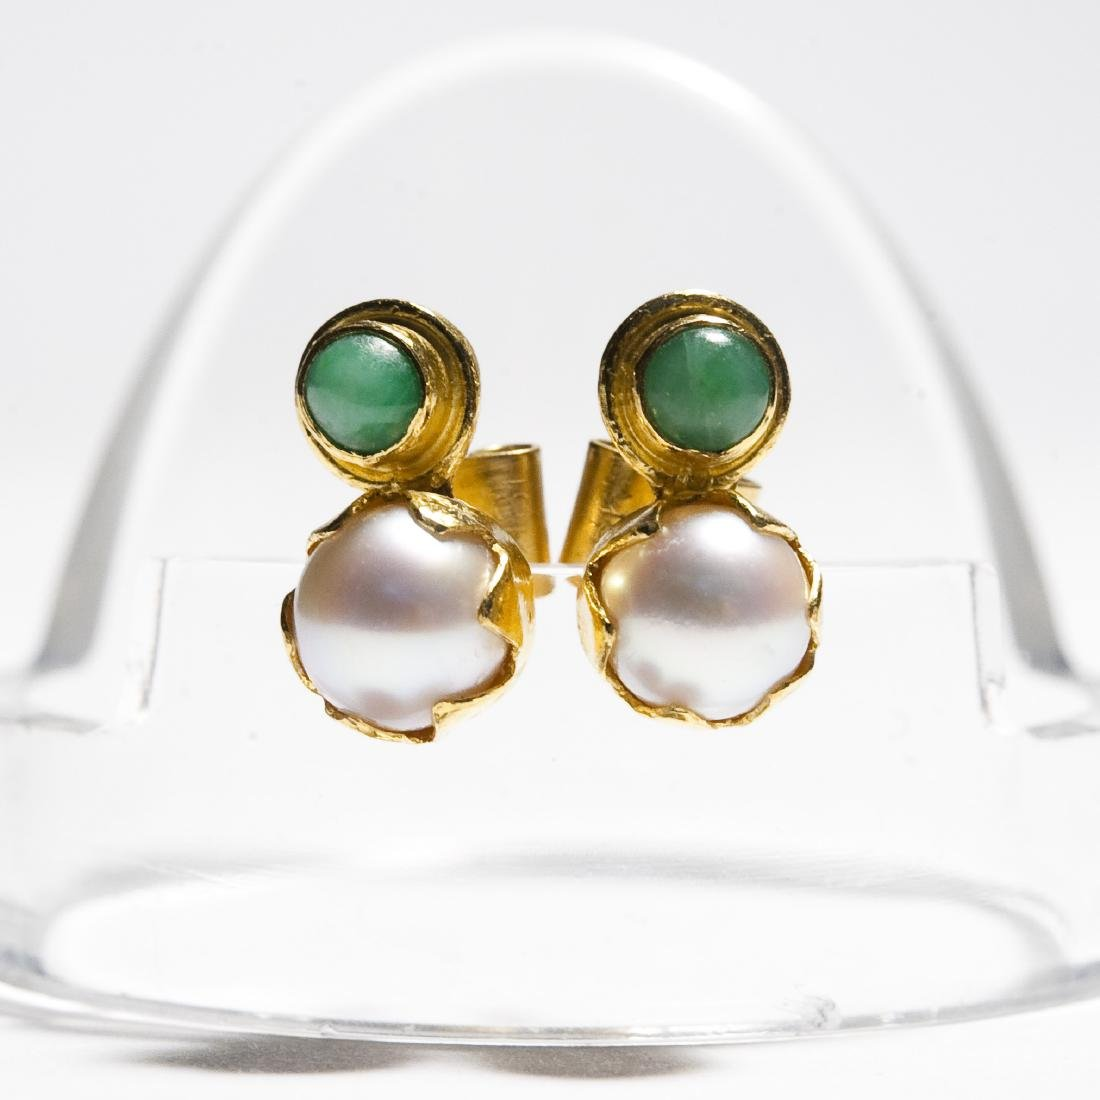 Chinese Gold, Jade And Pearl Ring & Earrings. - 5